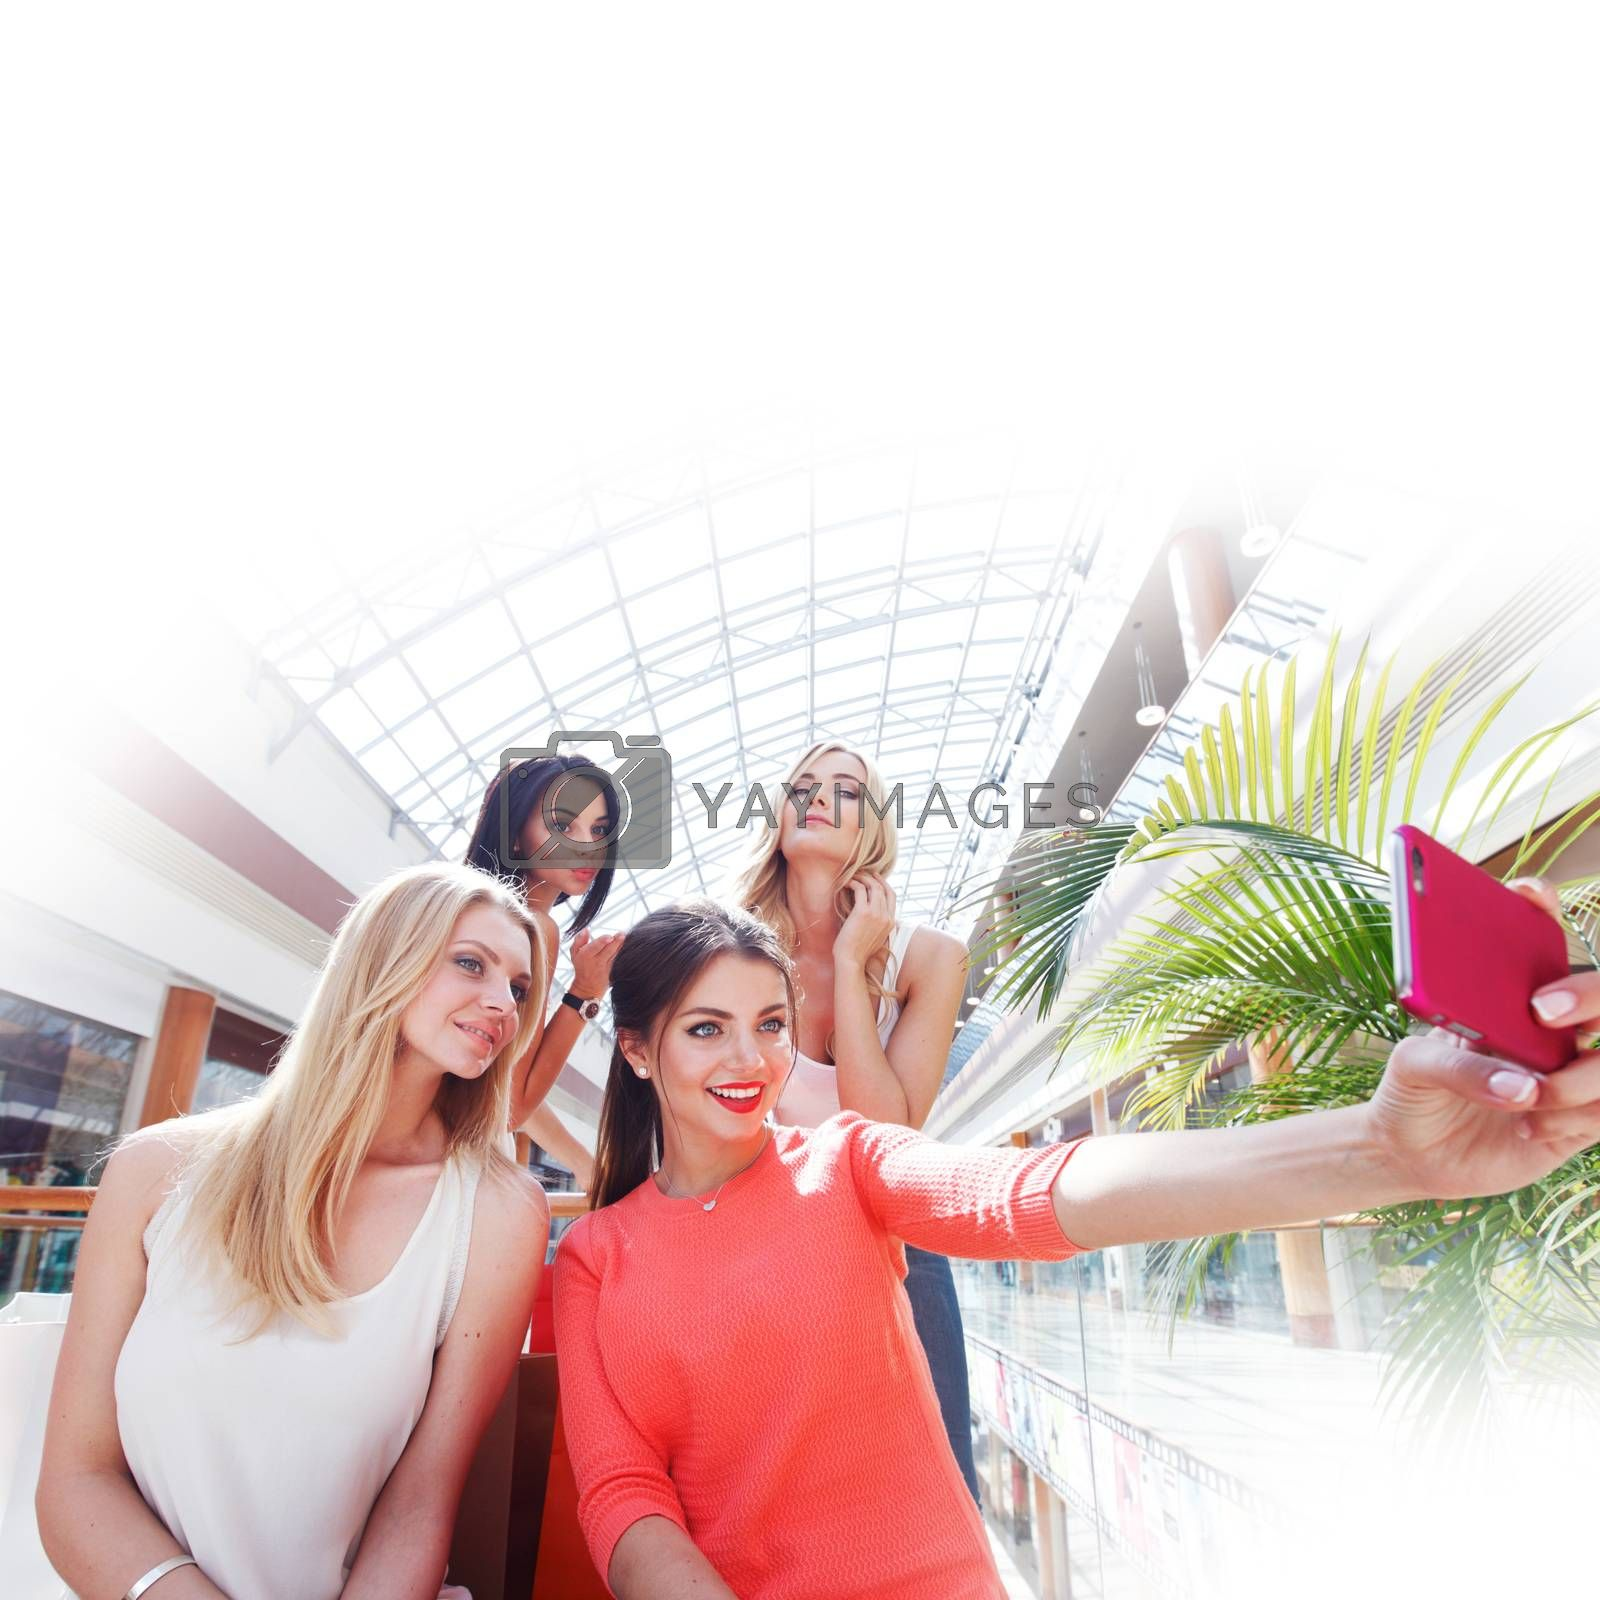 Friends taking selfie in shopping mall by ALotOfPeople